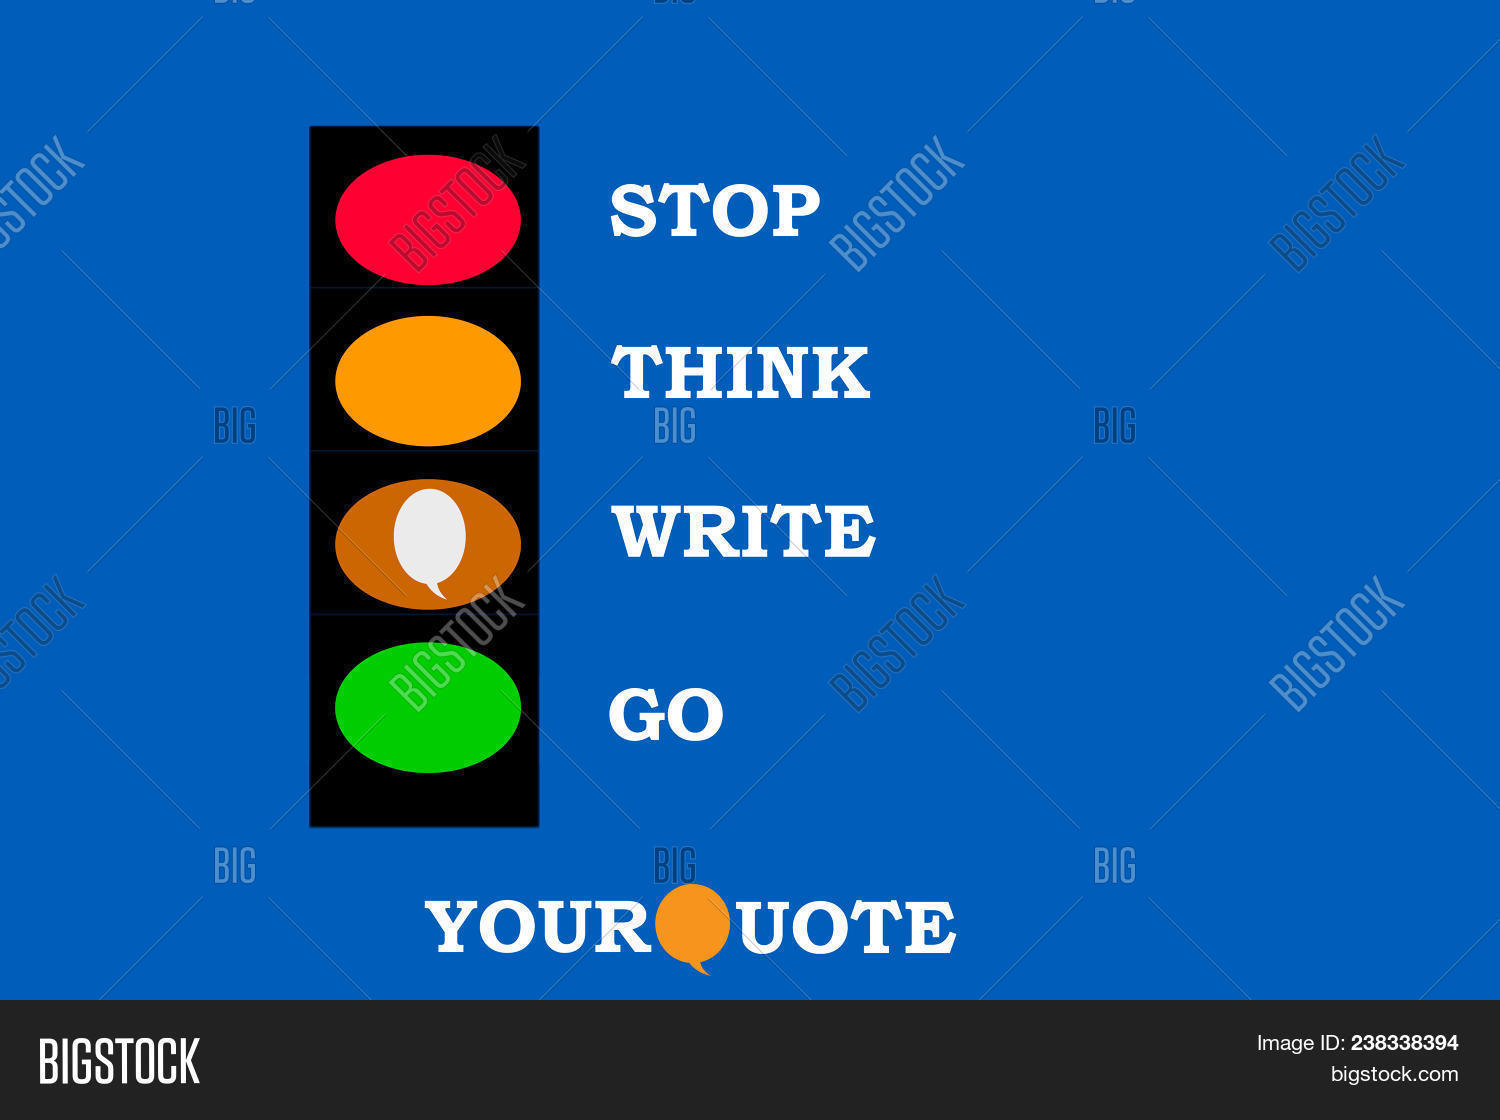 Stop Think Write Go Image Amp Photo Free Trial